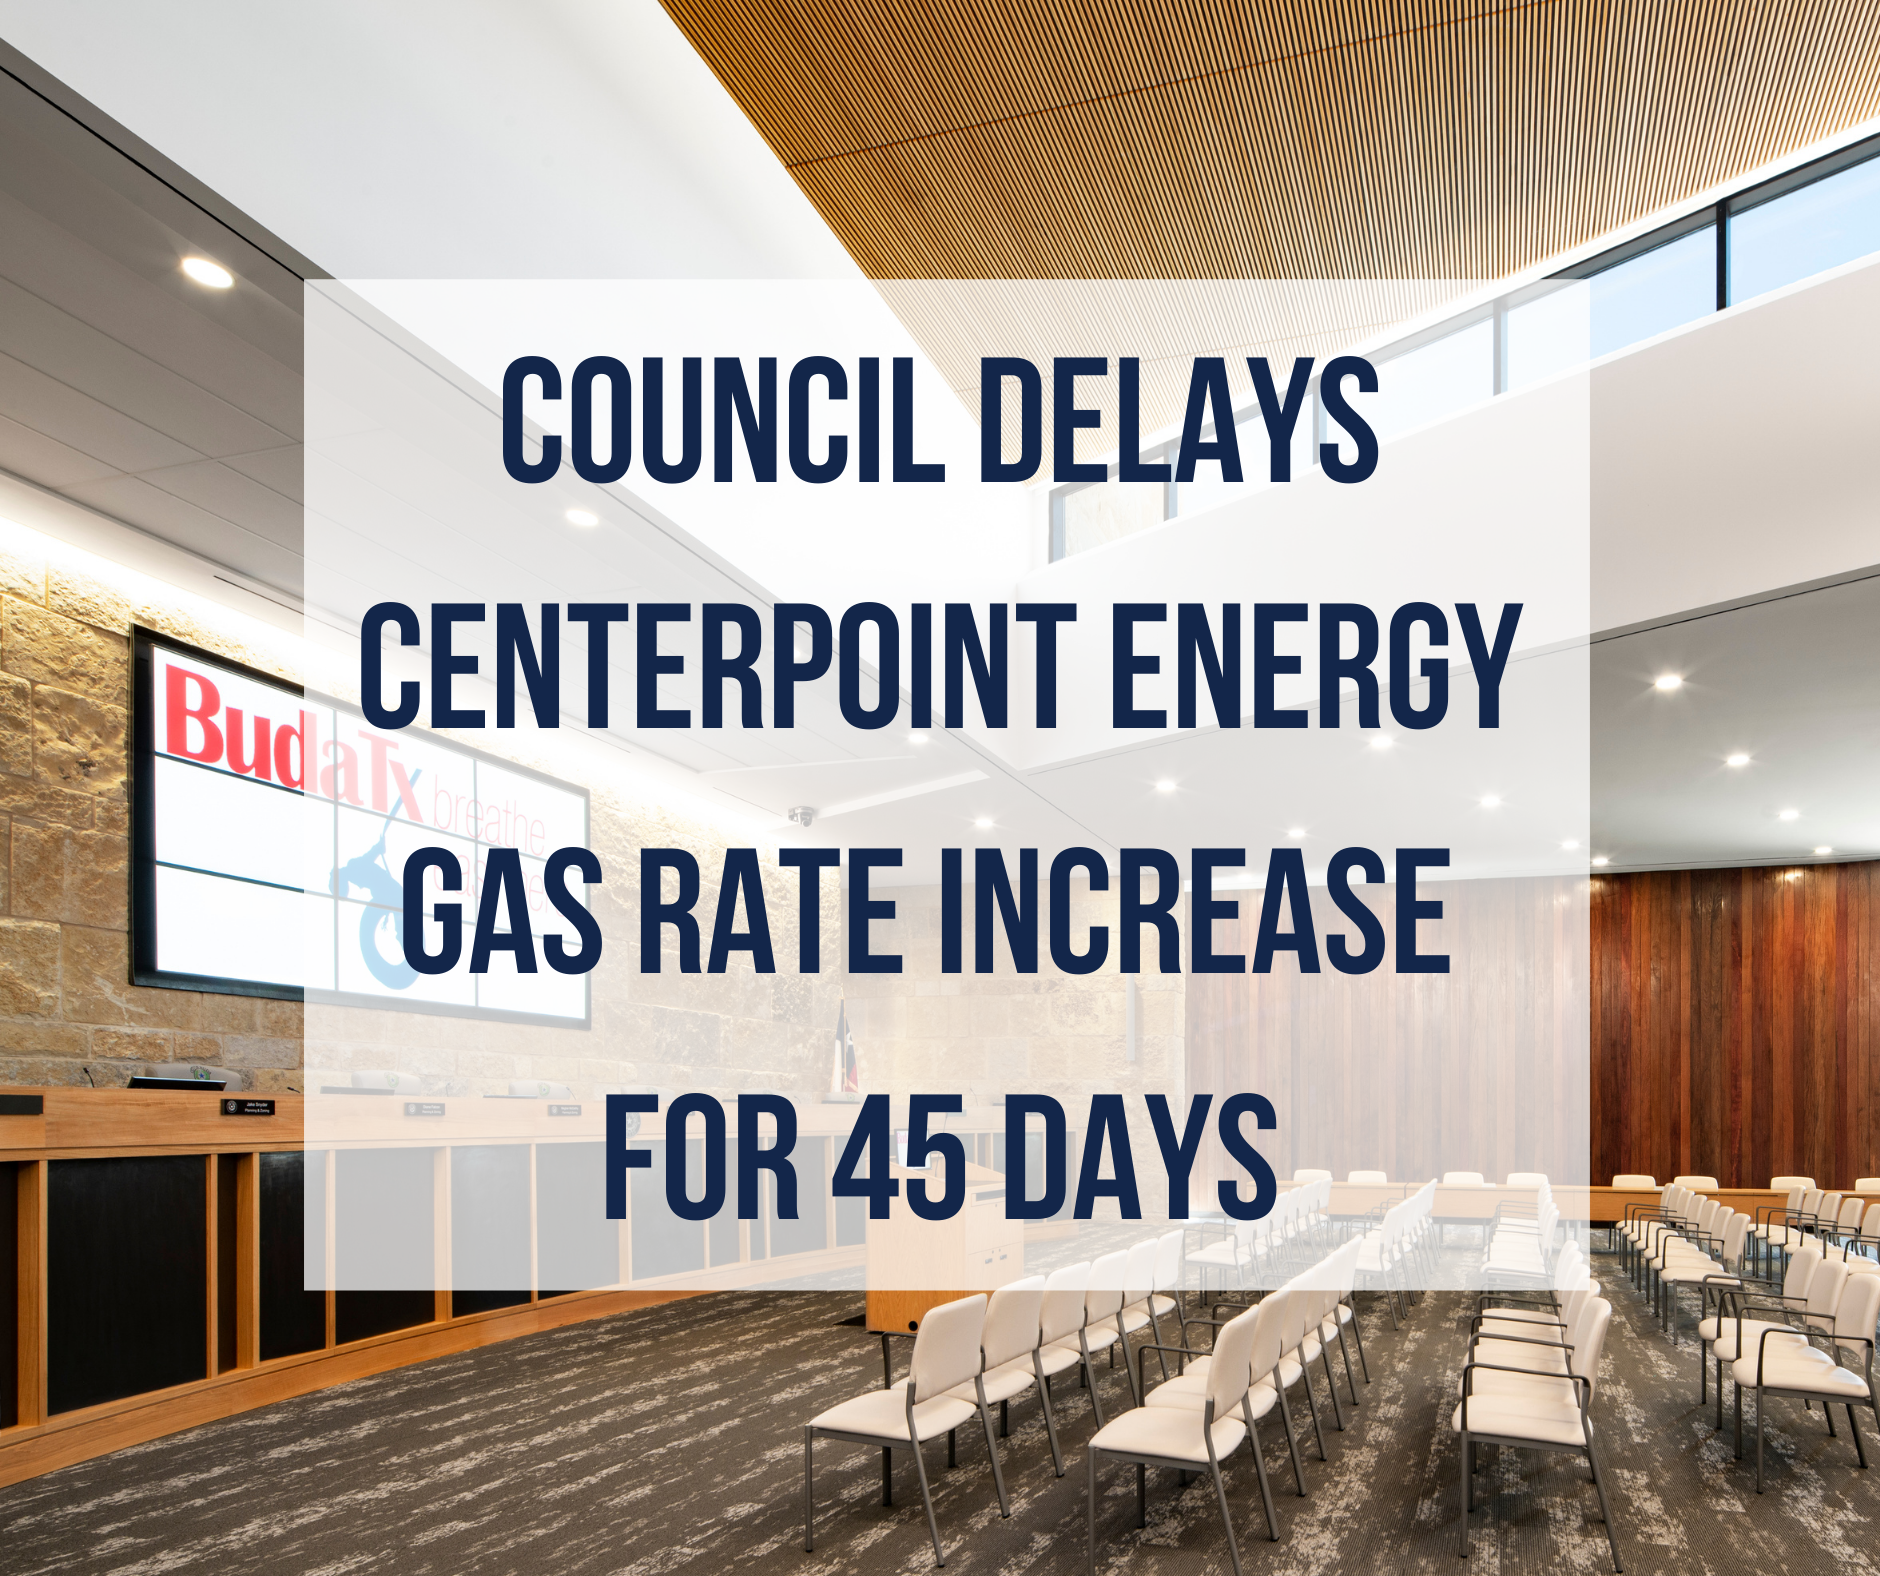 image of council chambers text council delays centerpoint energy gas rate increase for 45 days